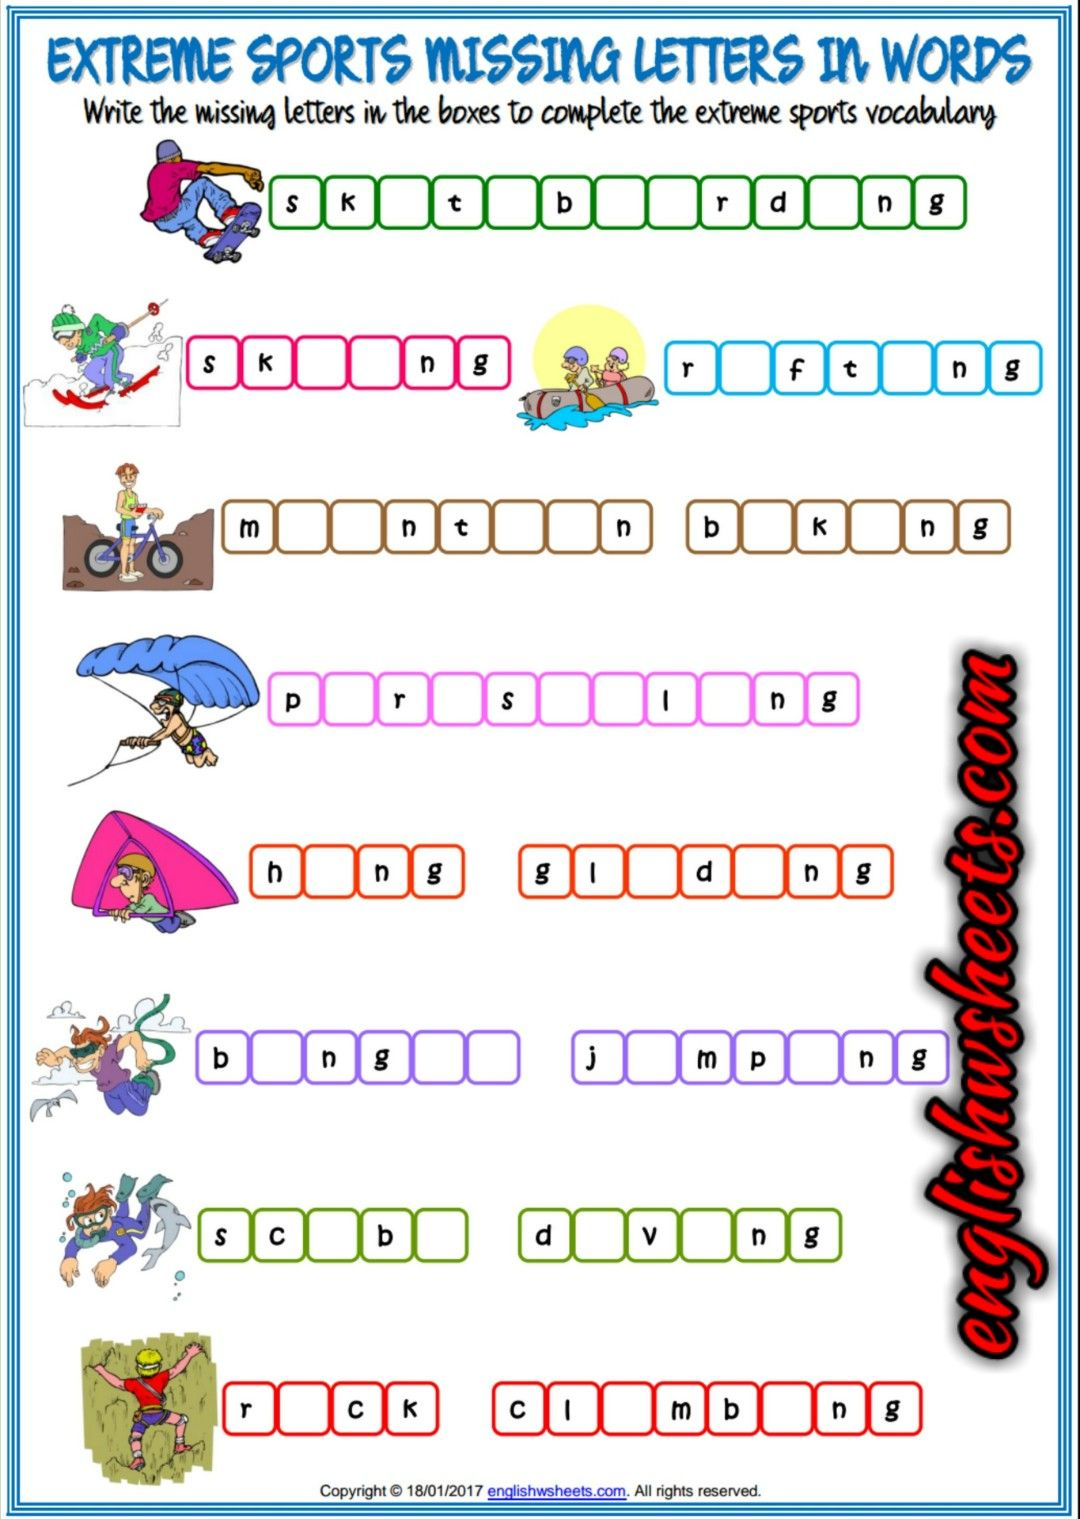 Extreme Sports Esl Printable Missing Letters In Words Worksheet For Kids